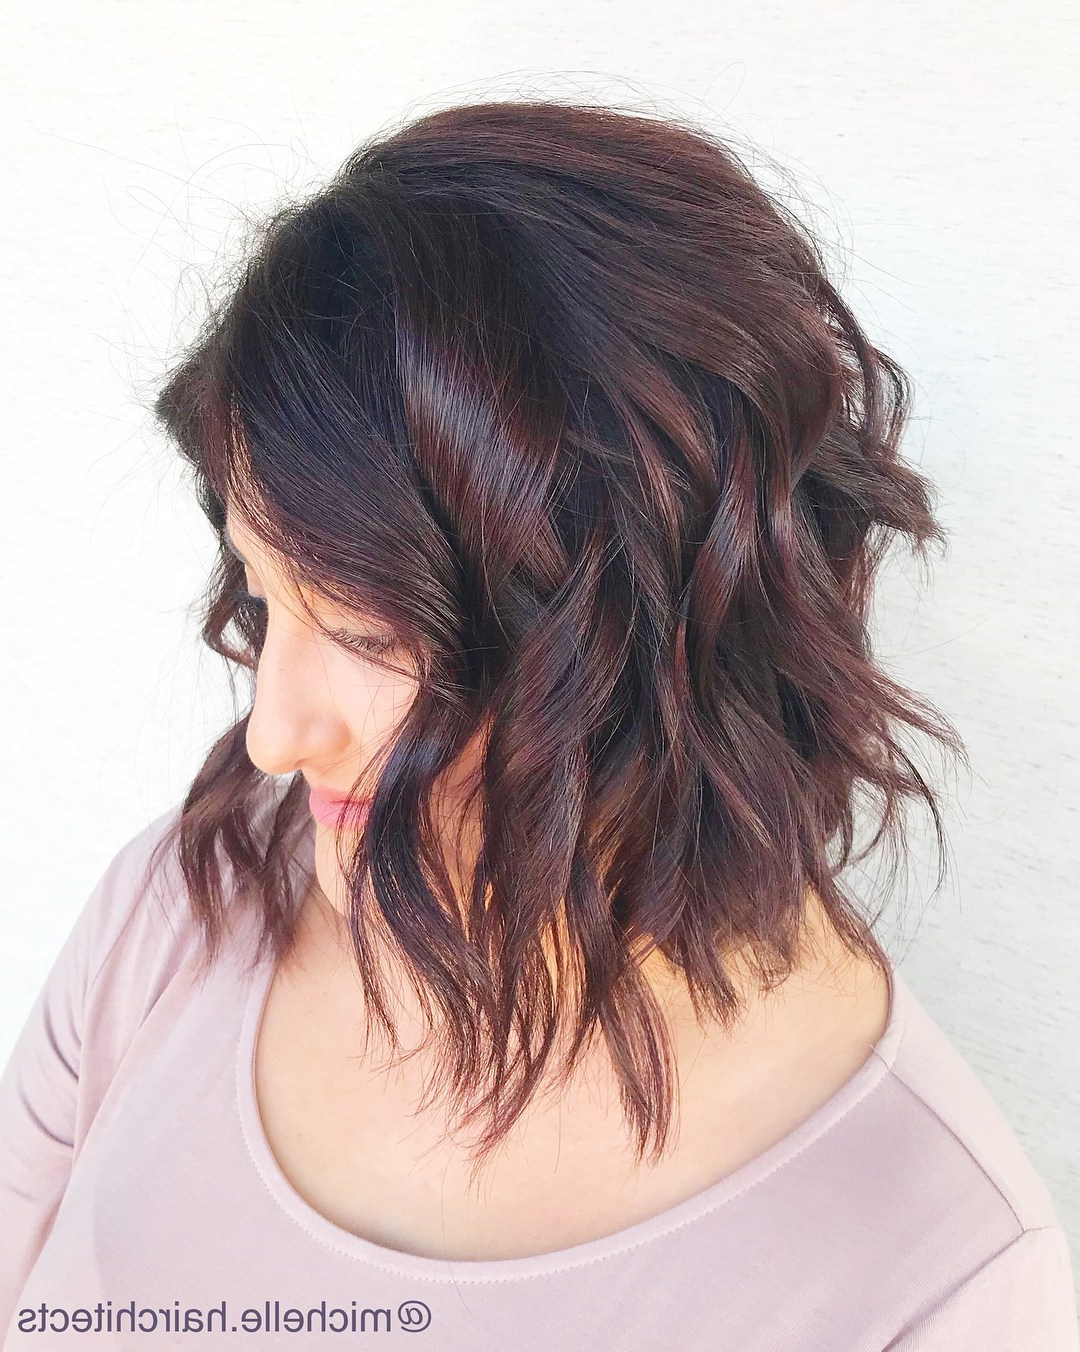 Newest Shag Haircuts With Disconnected Razored Layers For 50 Hairstyles For Thick Wavy Hair You Will Adore – Hair (View 16 of 20)